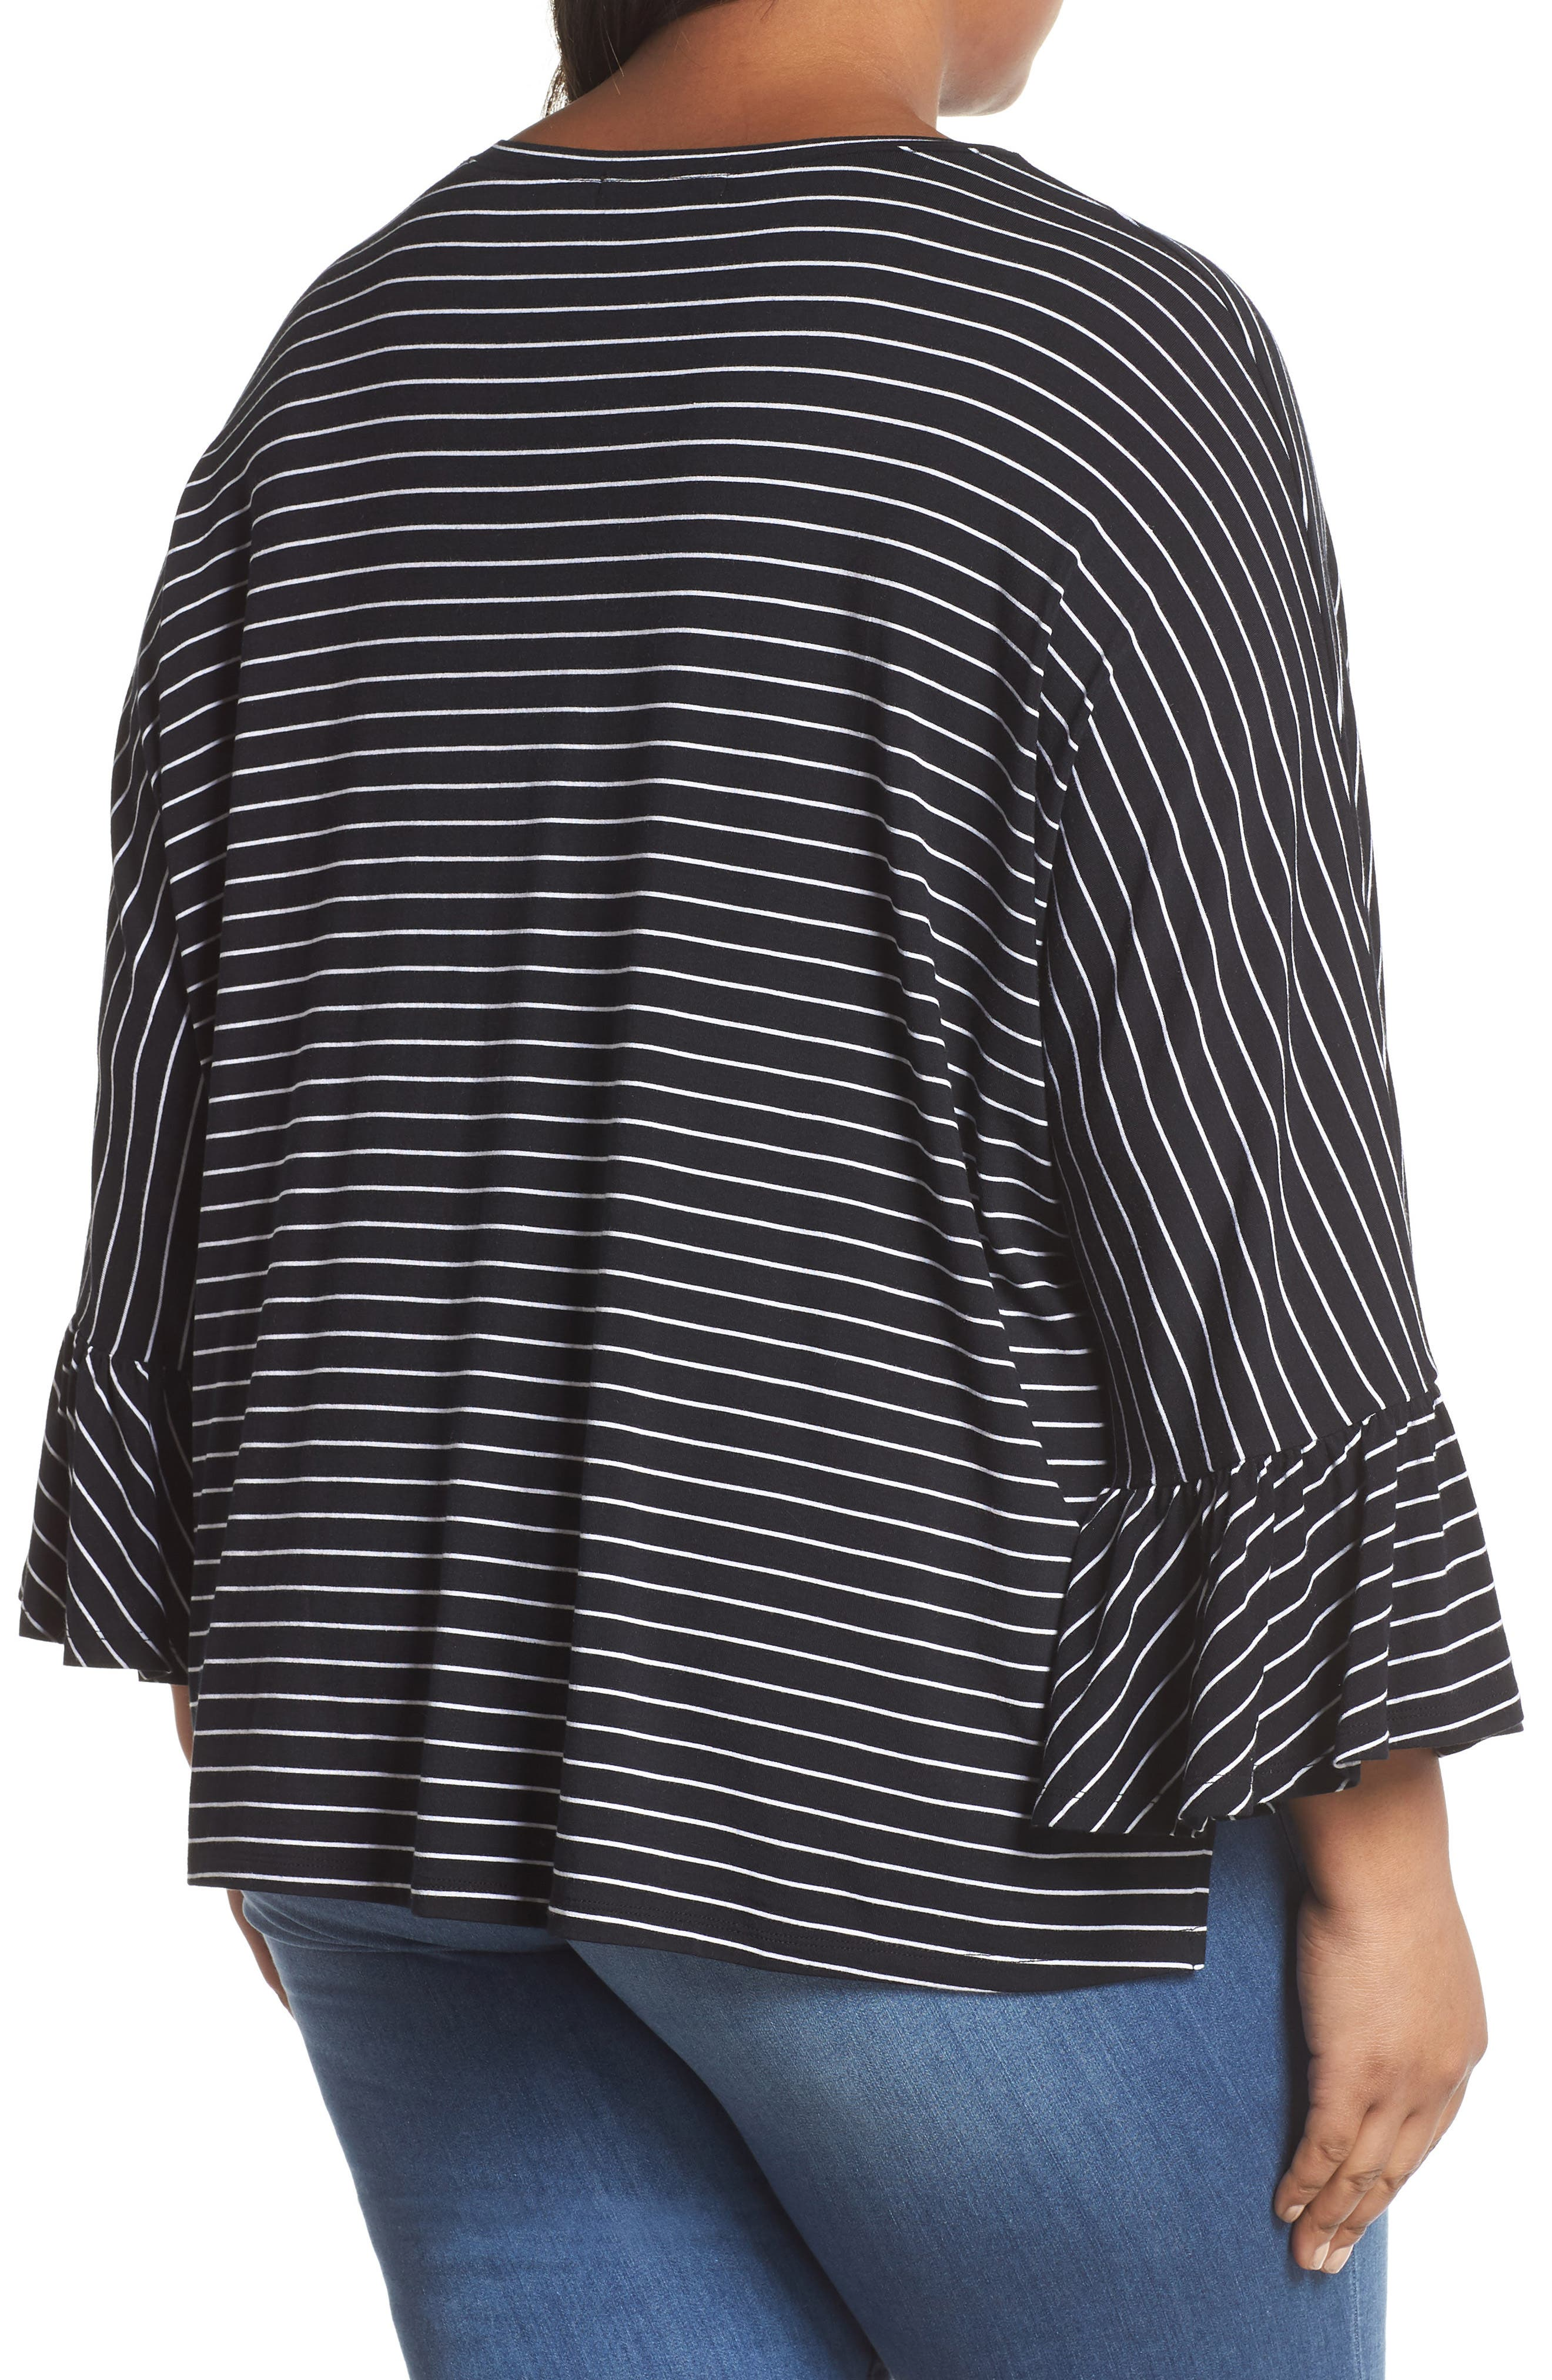 Ruffle Sleeve Knit Top,                             Alternate thumbnail 2, color,                             001